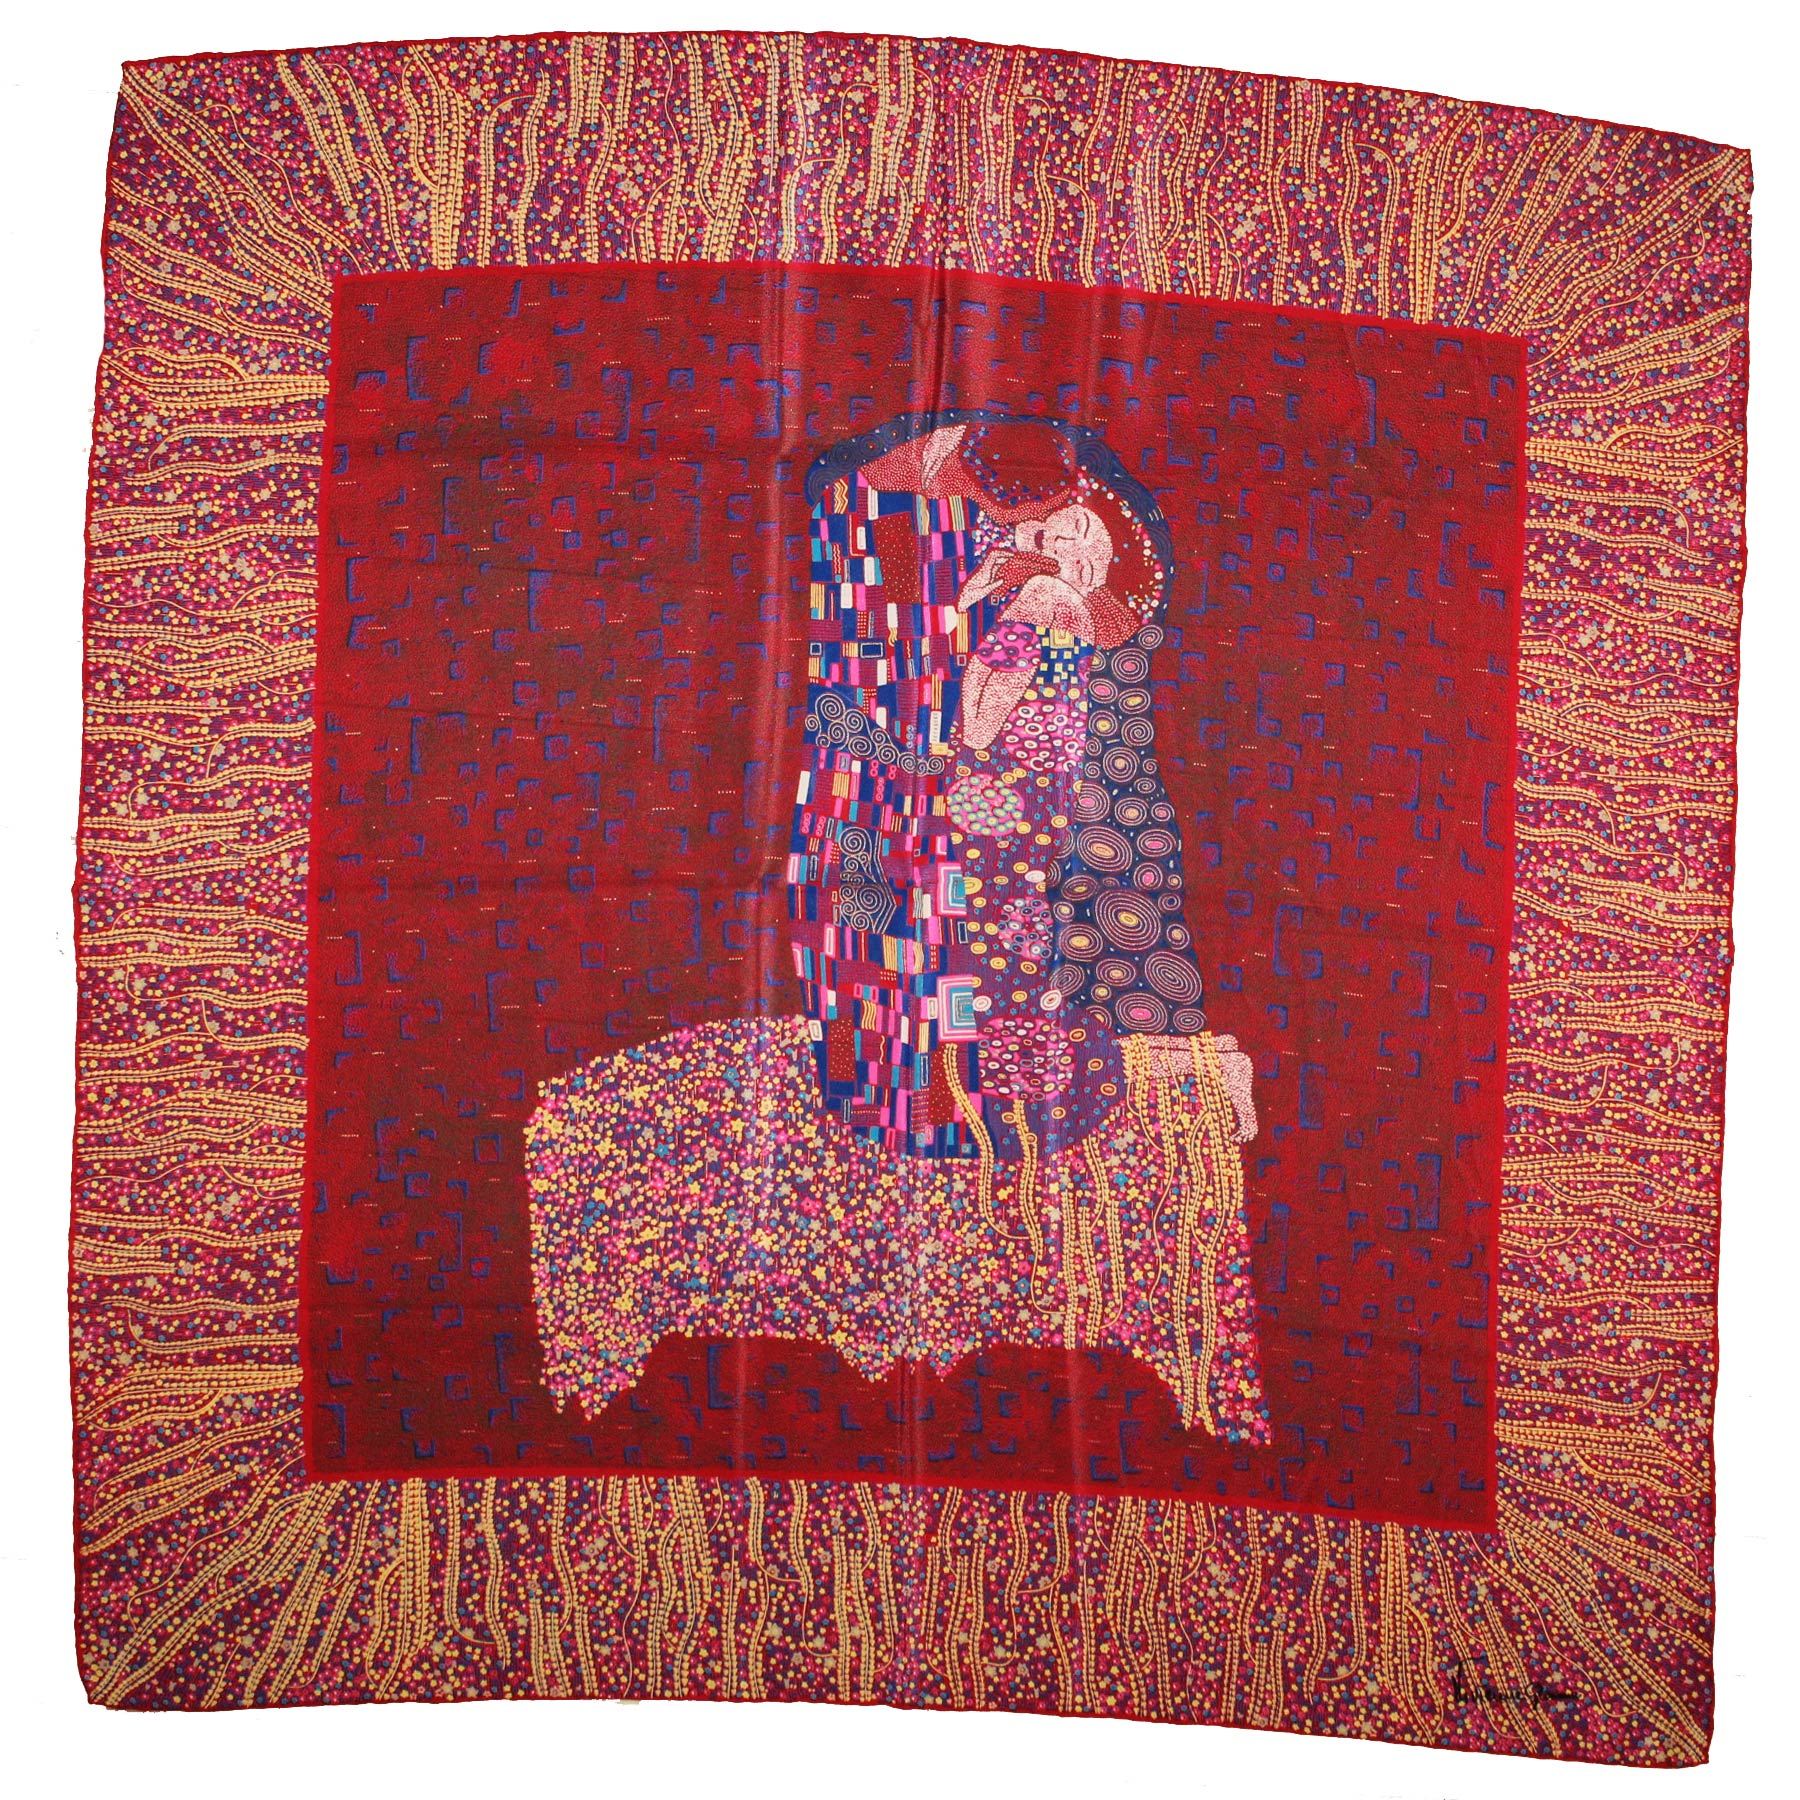 Vivienne Glamour Scarf Red Design - Large Silk Square Scarf